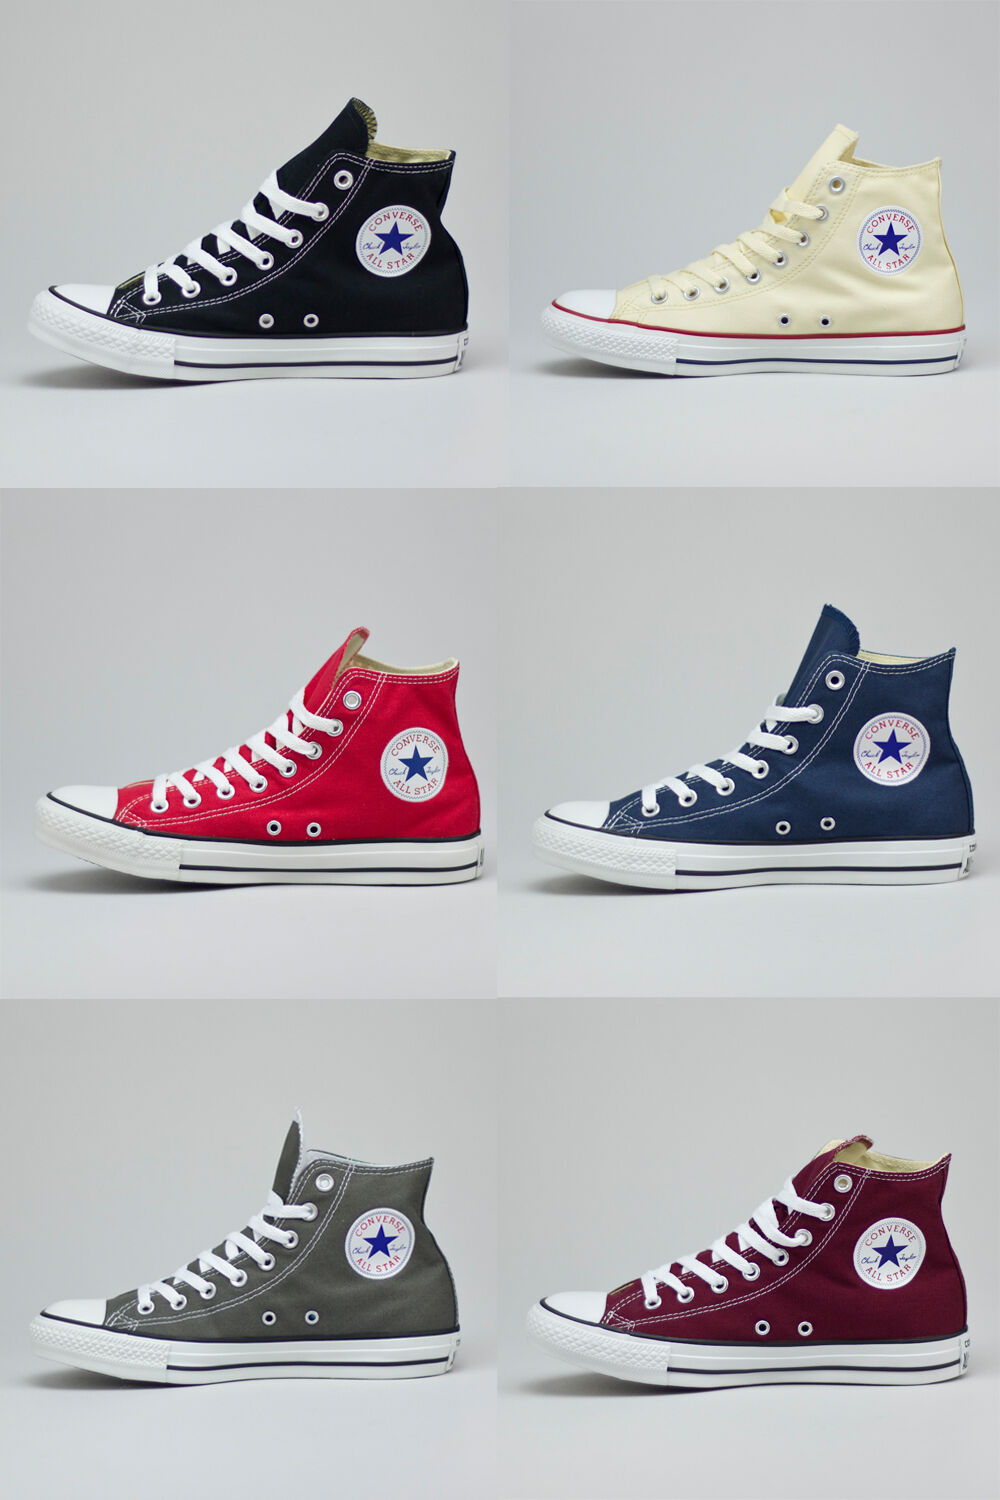 Converse Bll Star Hi Trainers Brand new in box Size UK sizes 3,4,5,6,7,8,9,10,11